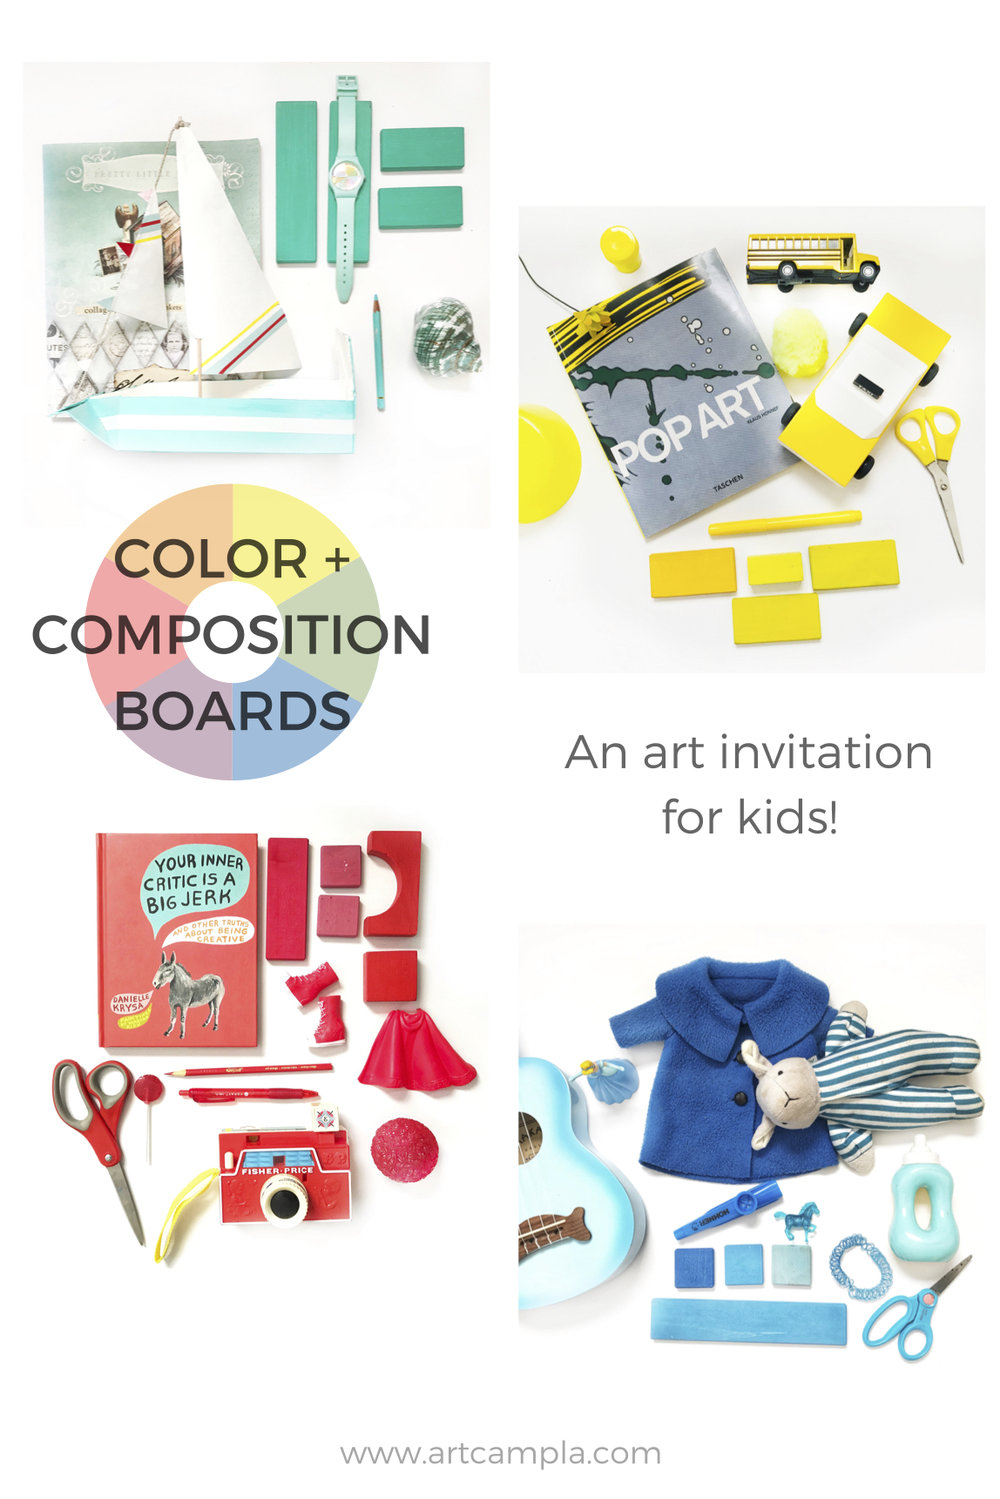 ART INVITATION FOR KIDS: COLOR + COMPOSITION BOARD